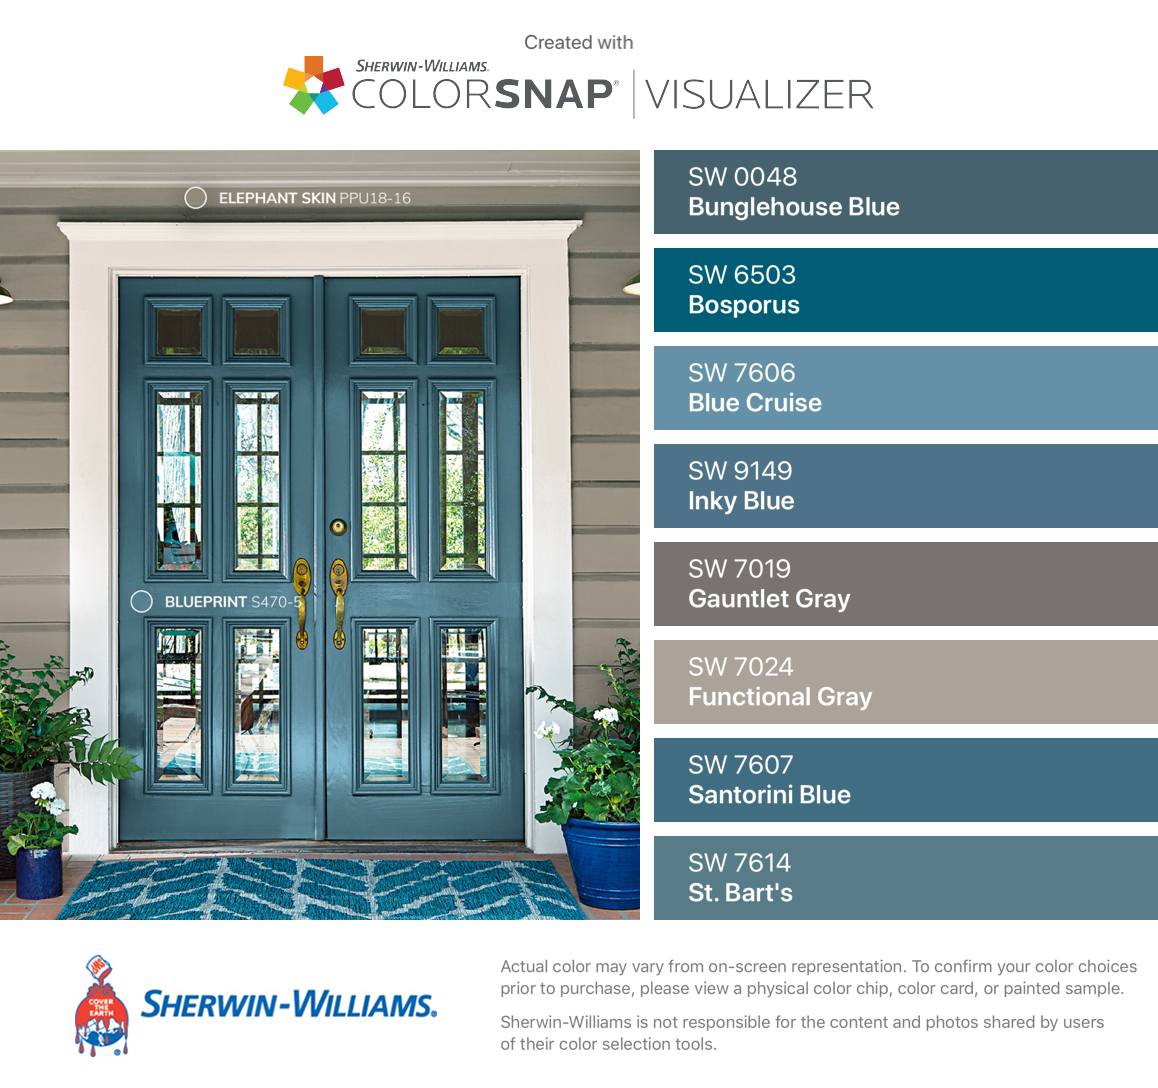 I Found These Colors With Colorsnap Visualizer For Iphone By Sherwin Williams Bunglehouse Blu Exterior Door Colors House Paint Exterior Exterior House Colors